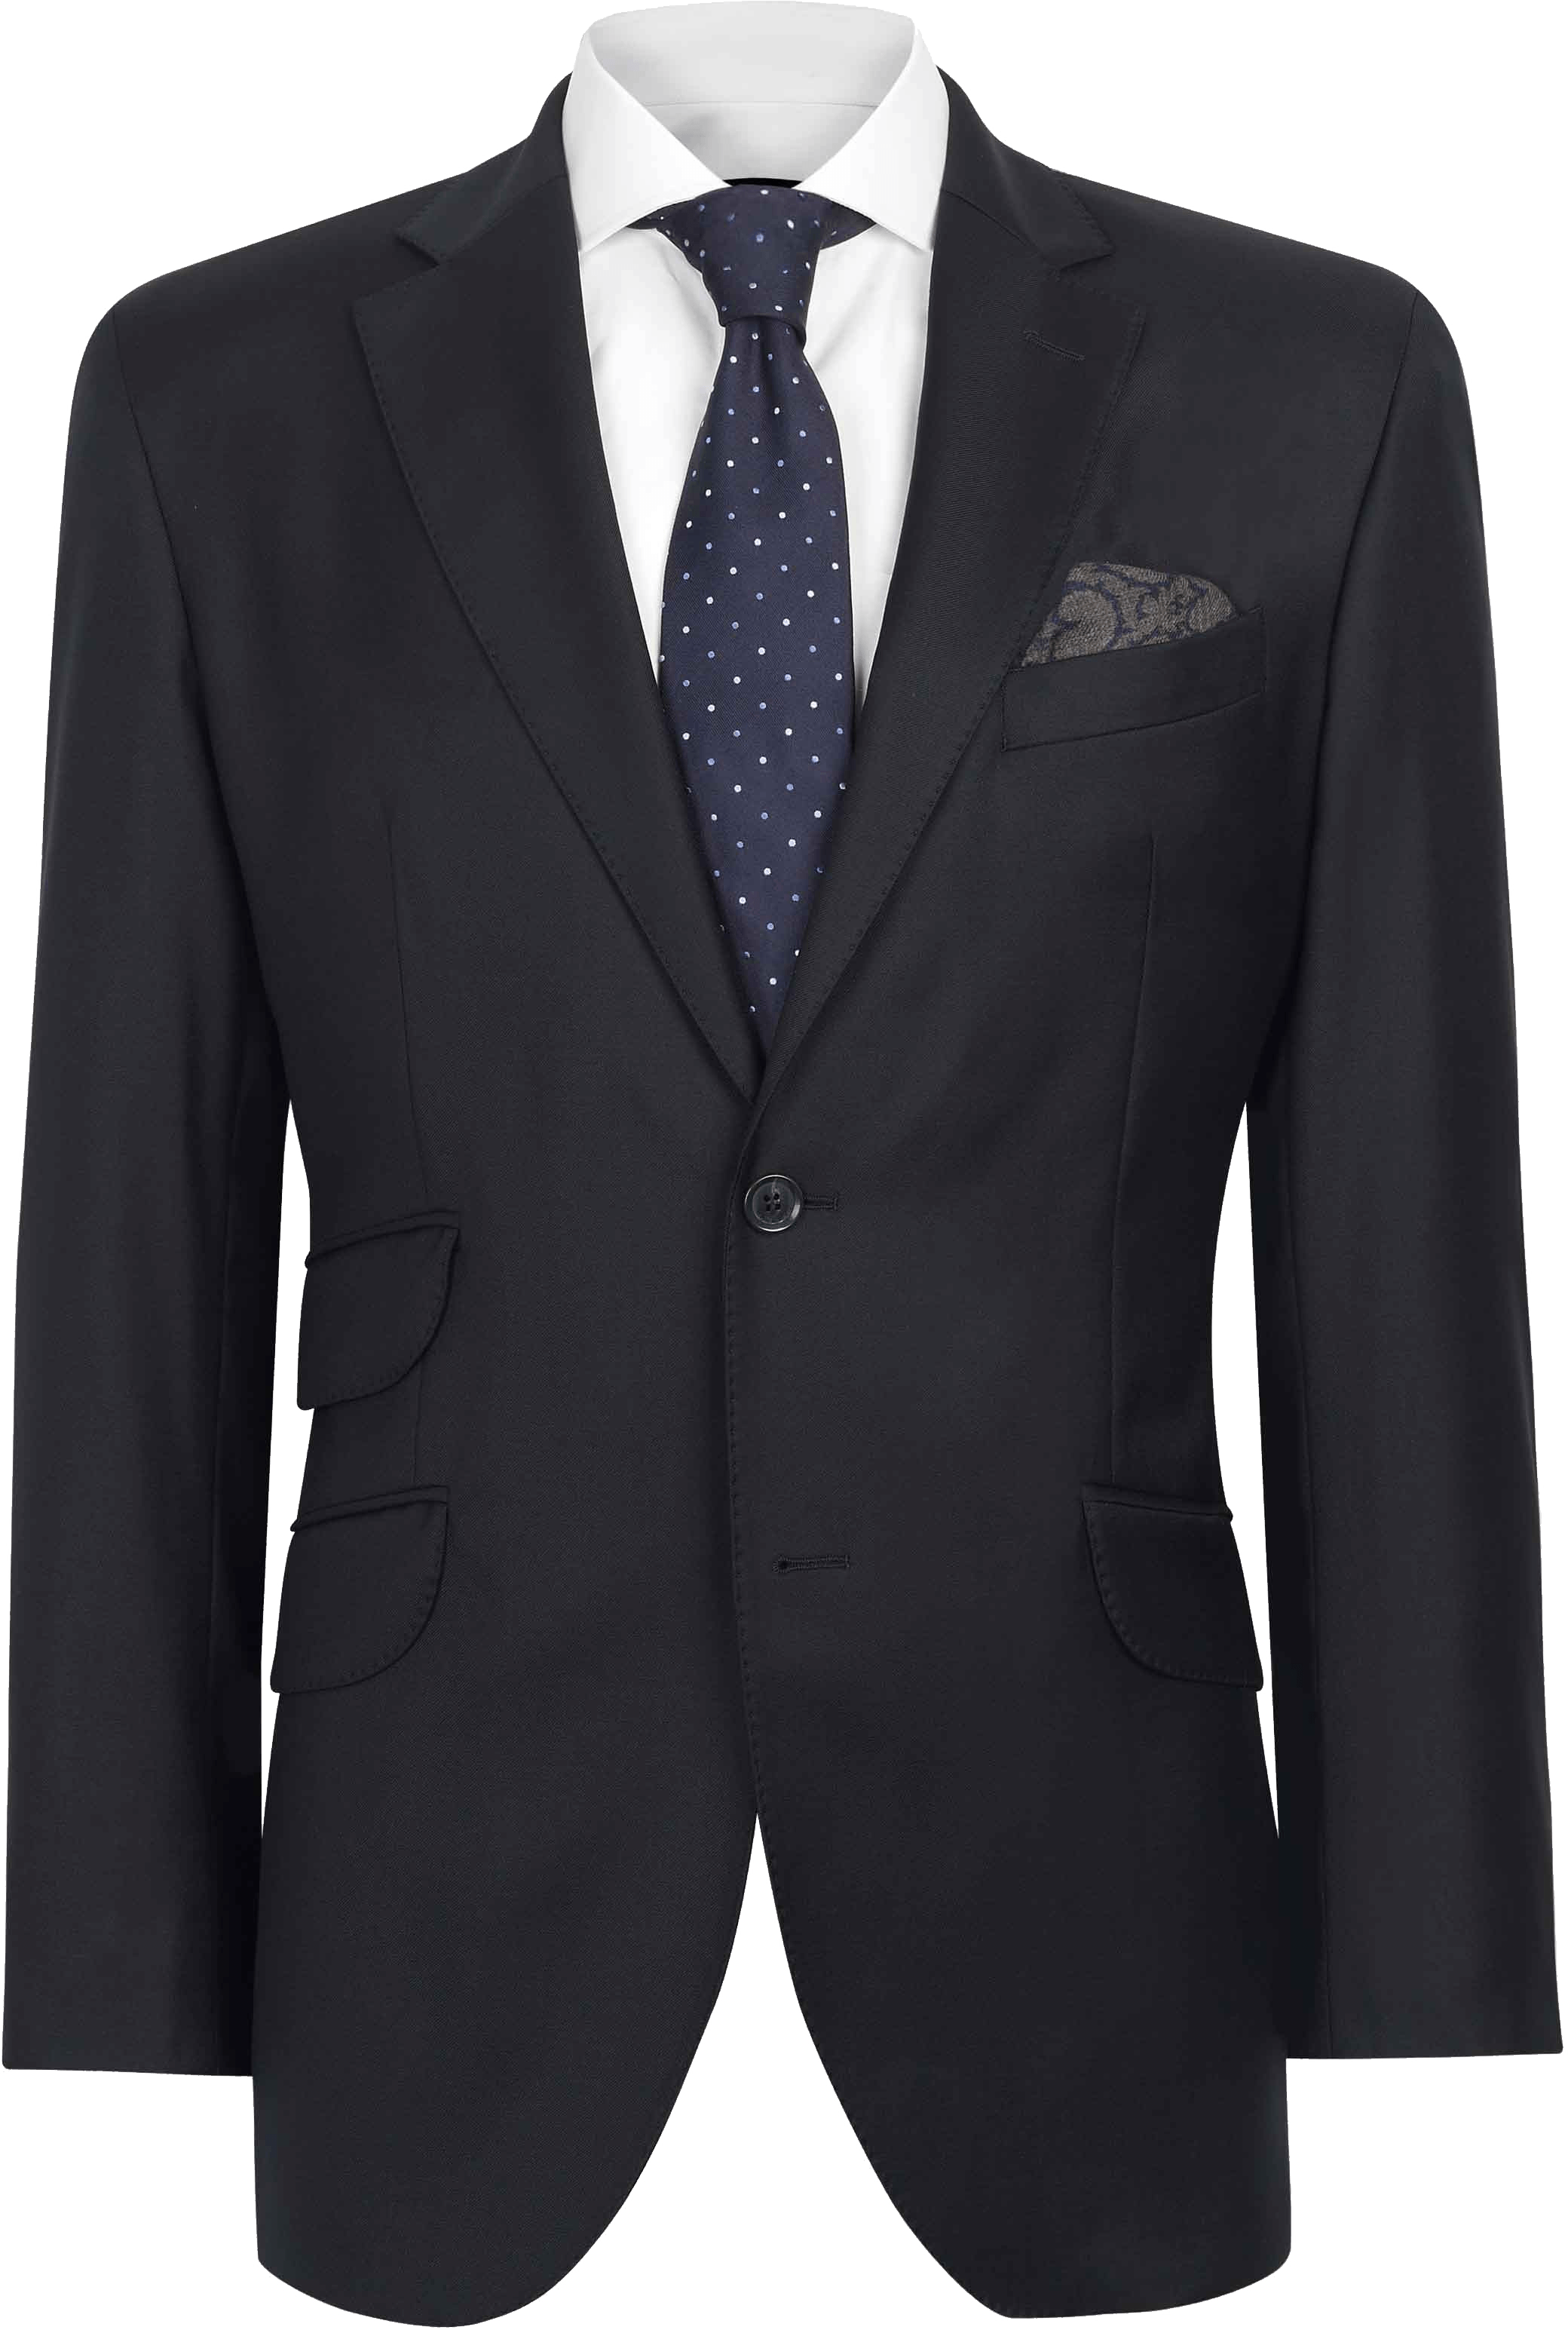 Suit transparent. Hd png images pluspng